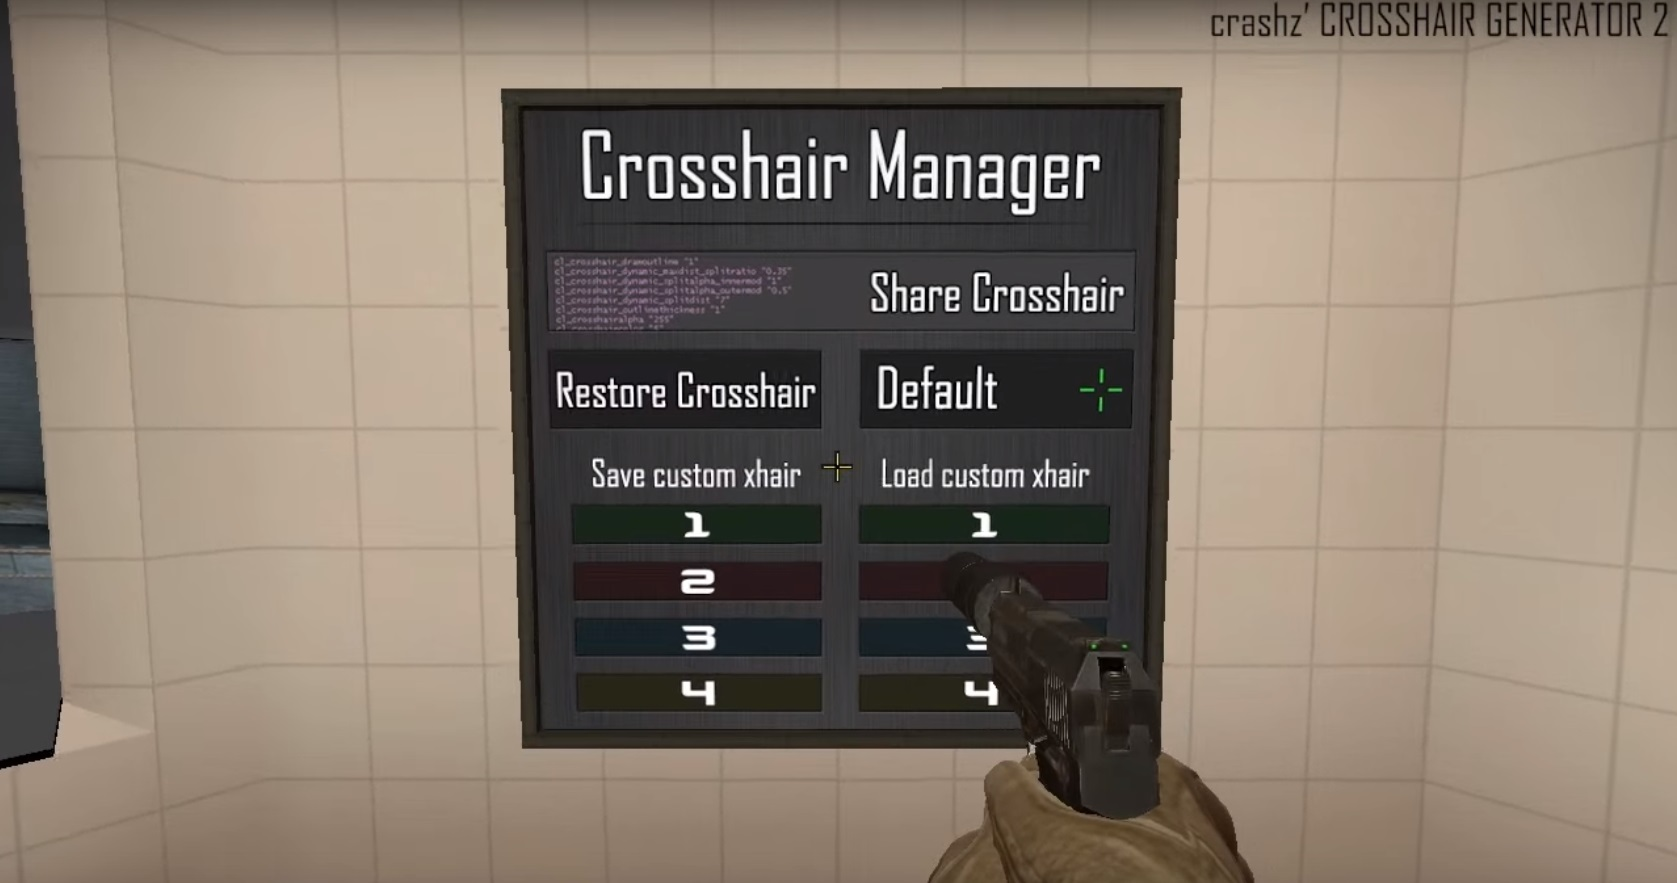 Crosshair manager